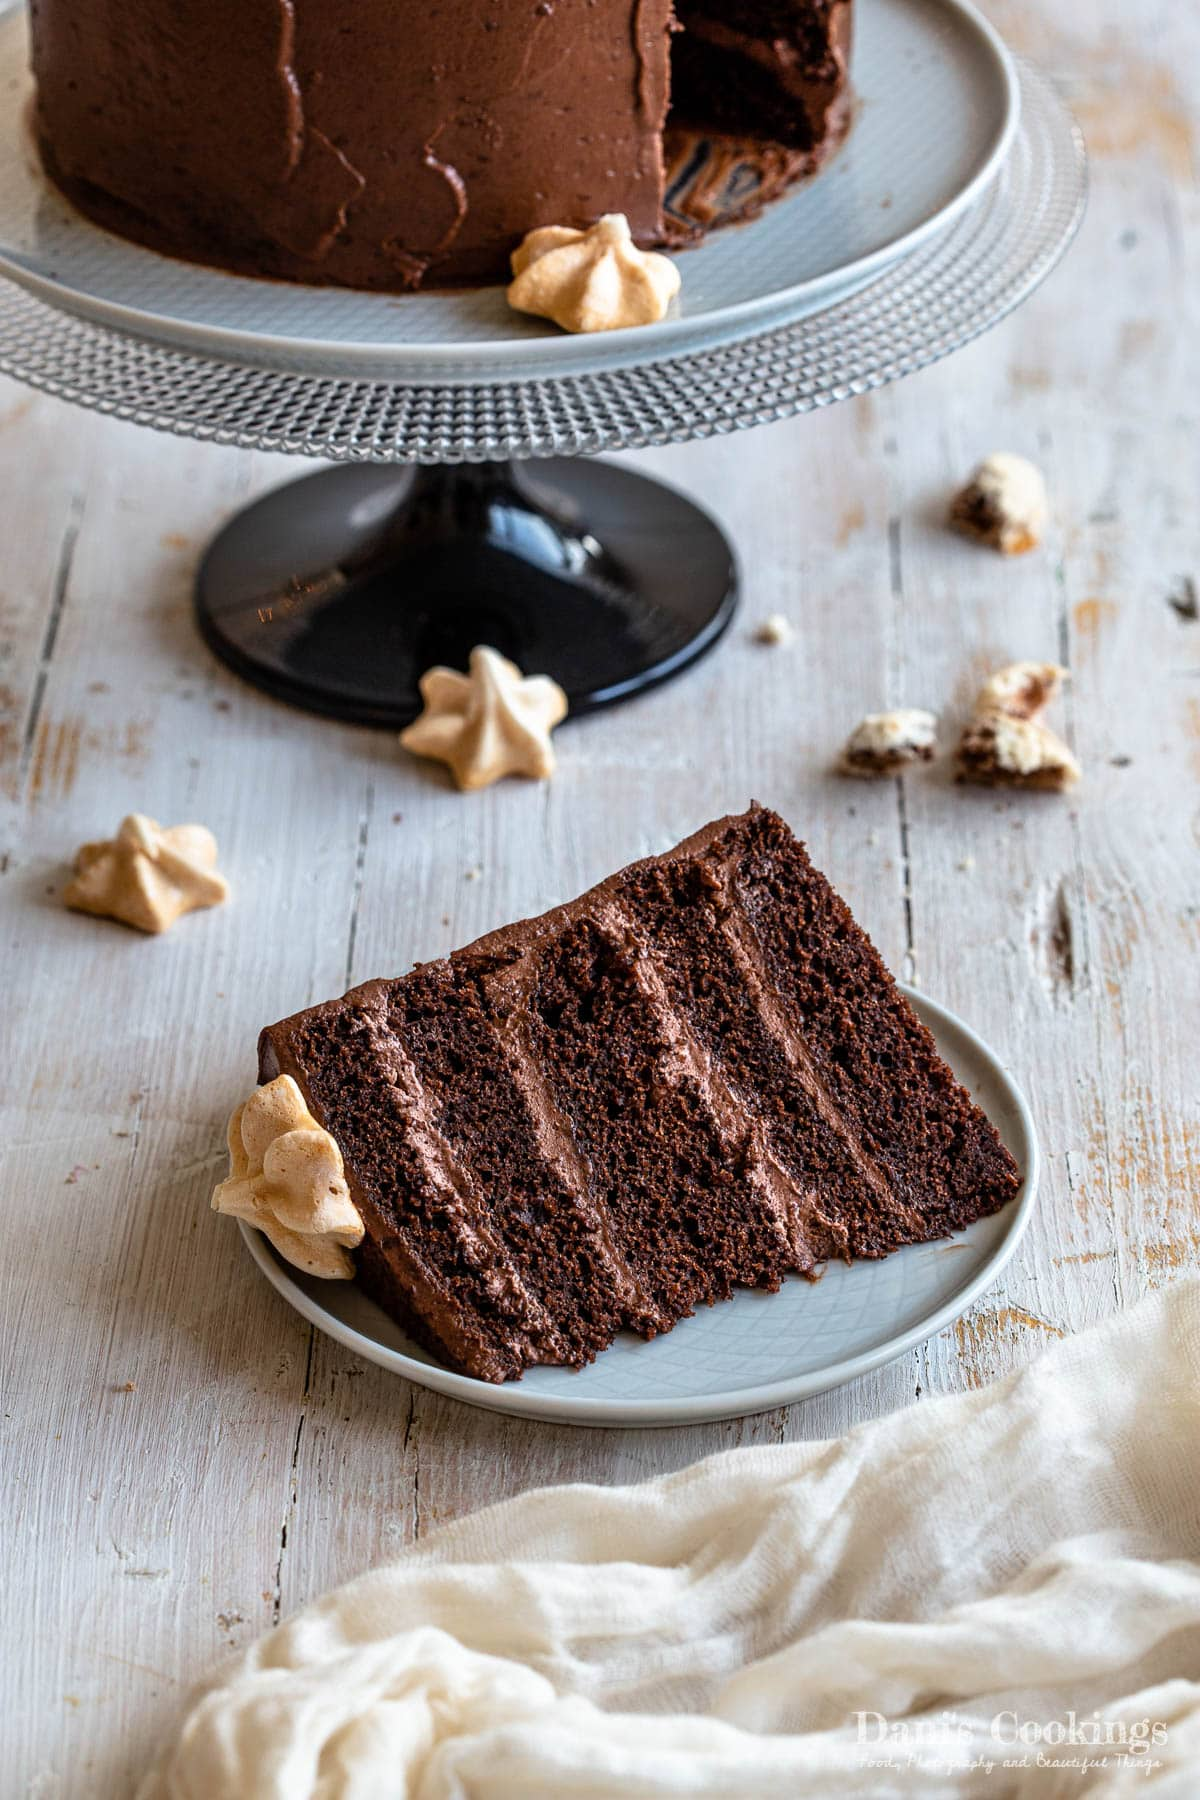 a slice of chocolate cake with meringues